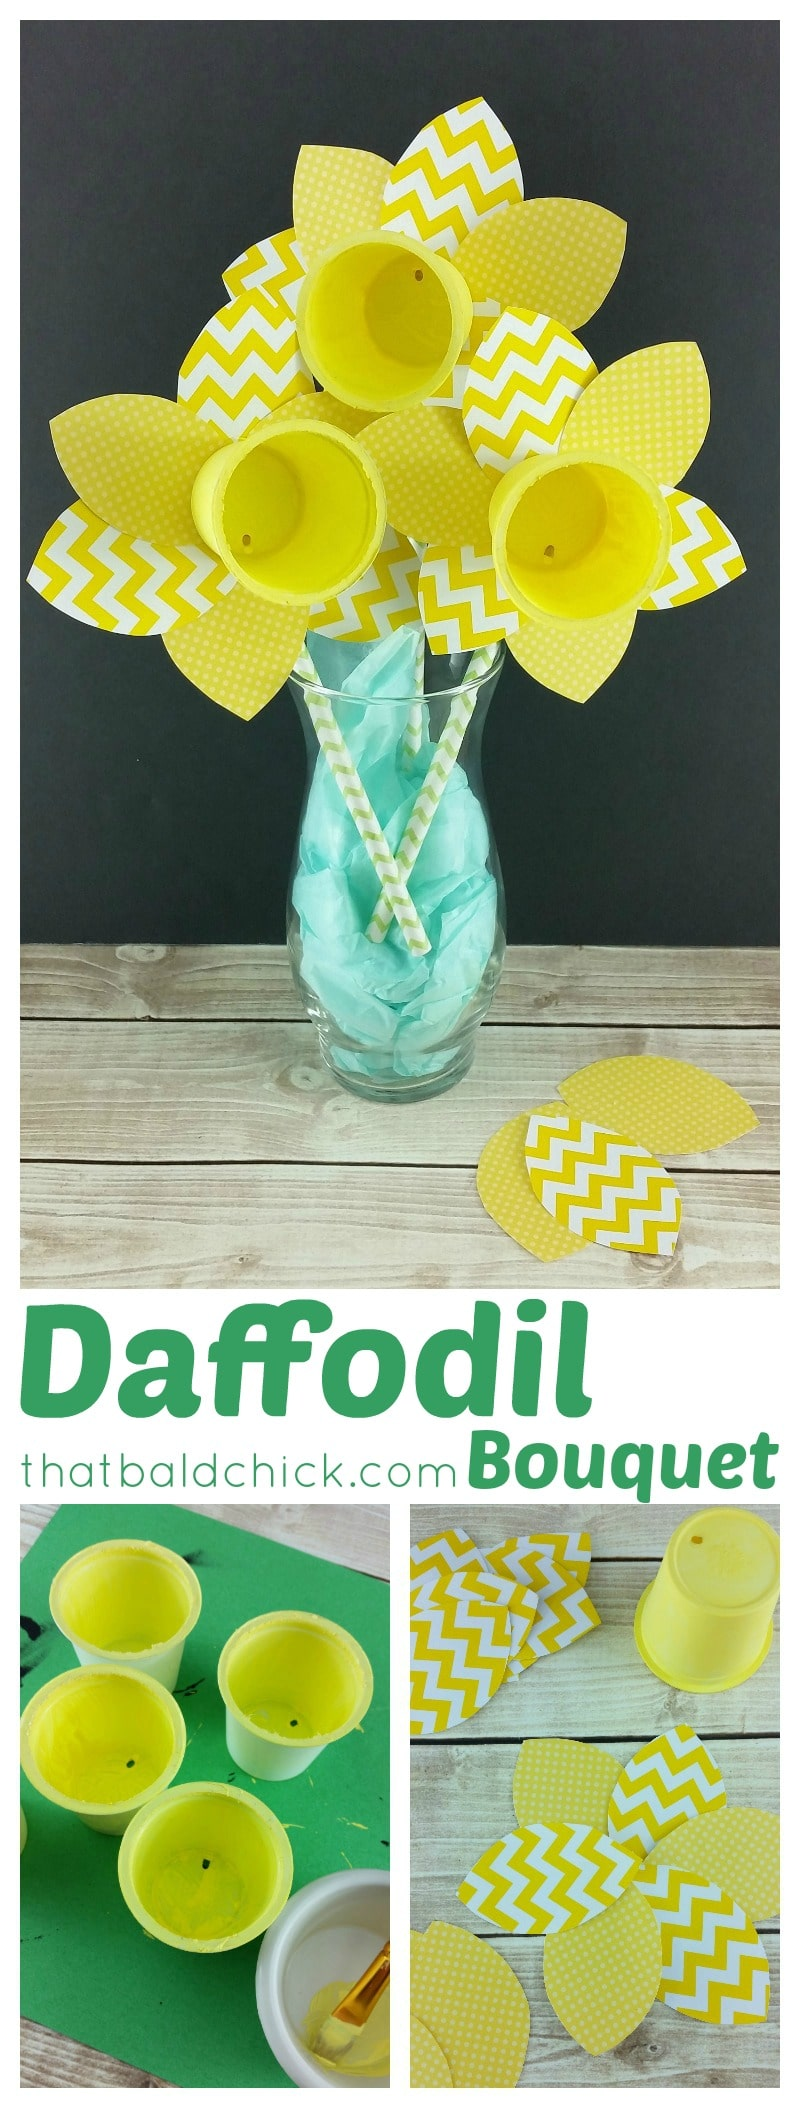 Daffodil Bouquet Craft at thatbaldchick.com